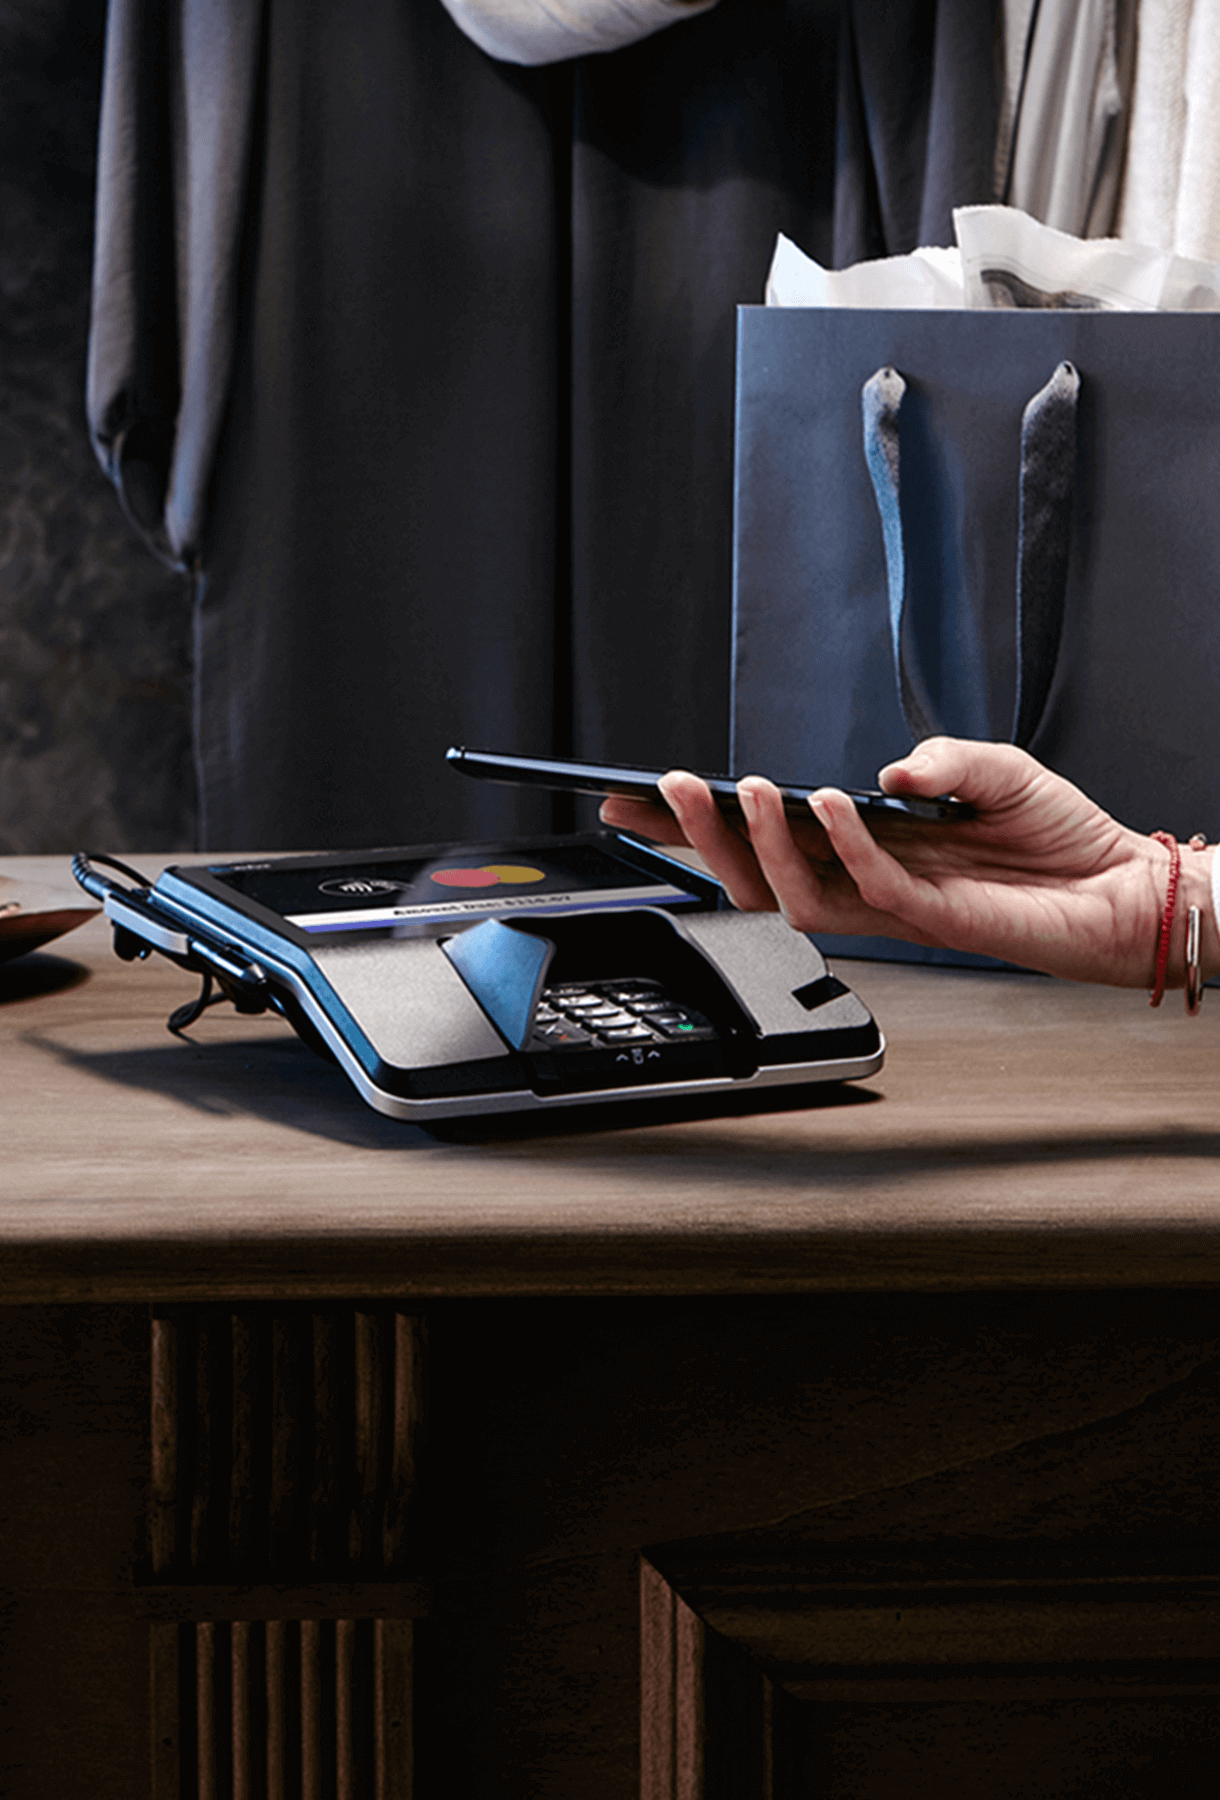 Hand holding mobile phone above card reader to make a purchase at a retail clothing store